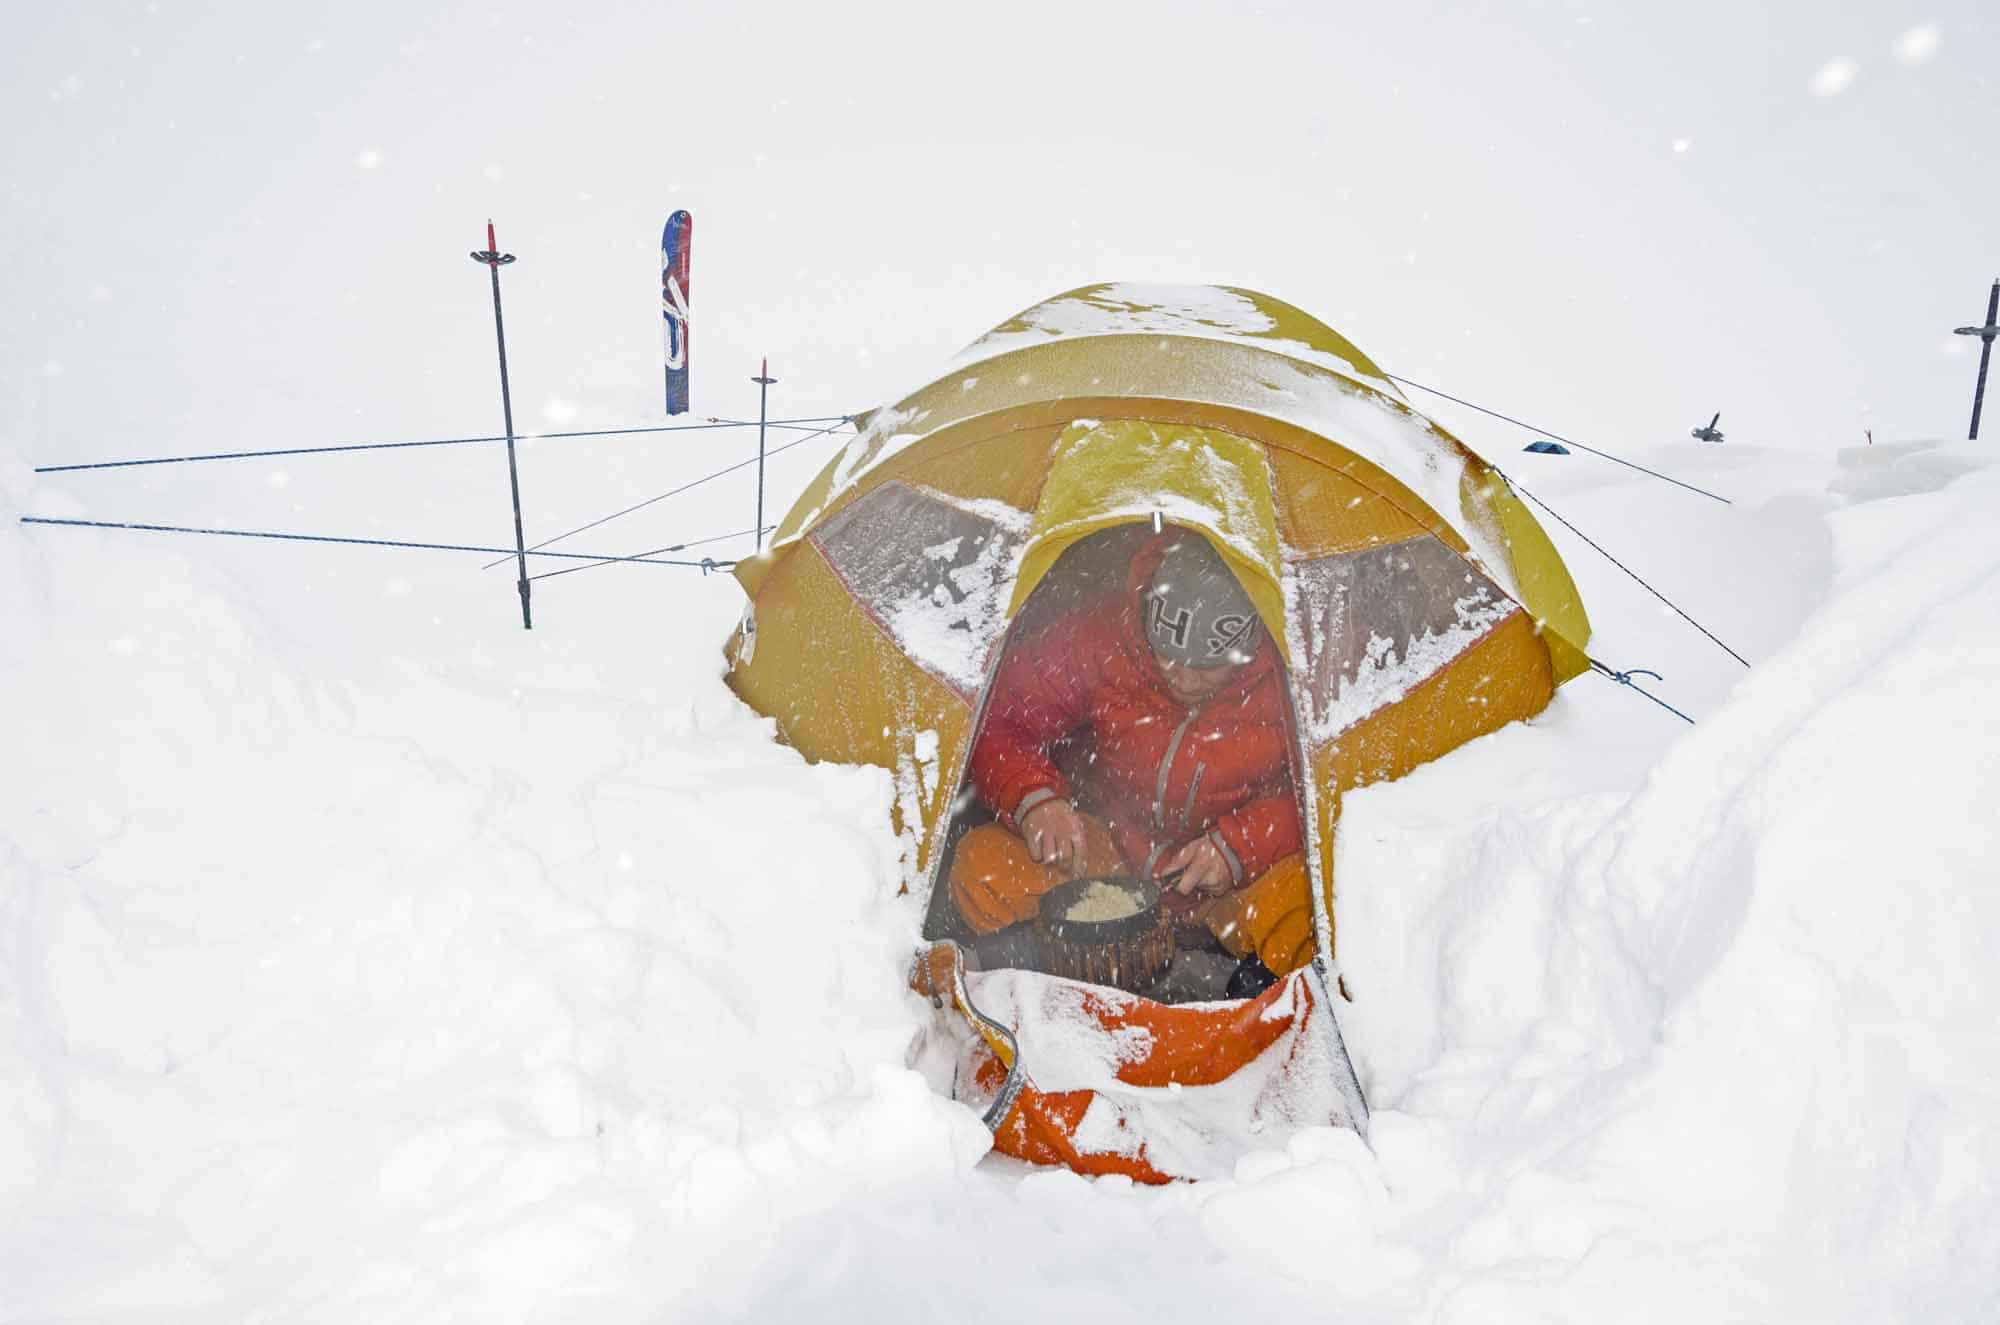 Mount-Not-So-Fairweather-bivouac-photo-by-Steve-Ogle